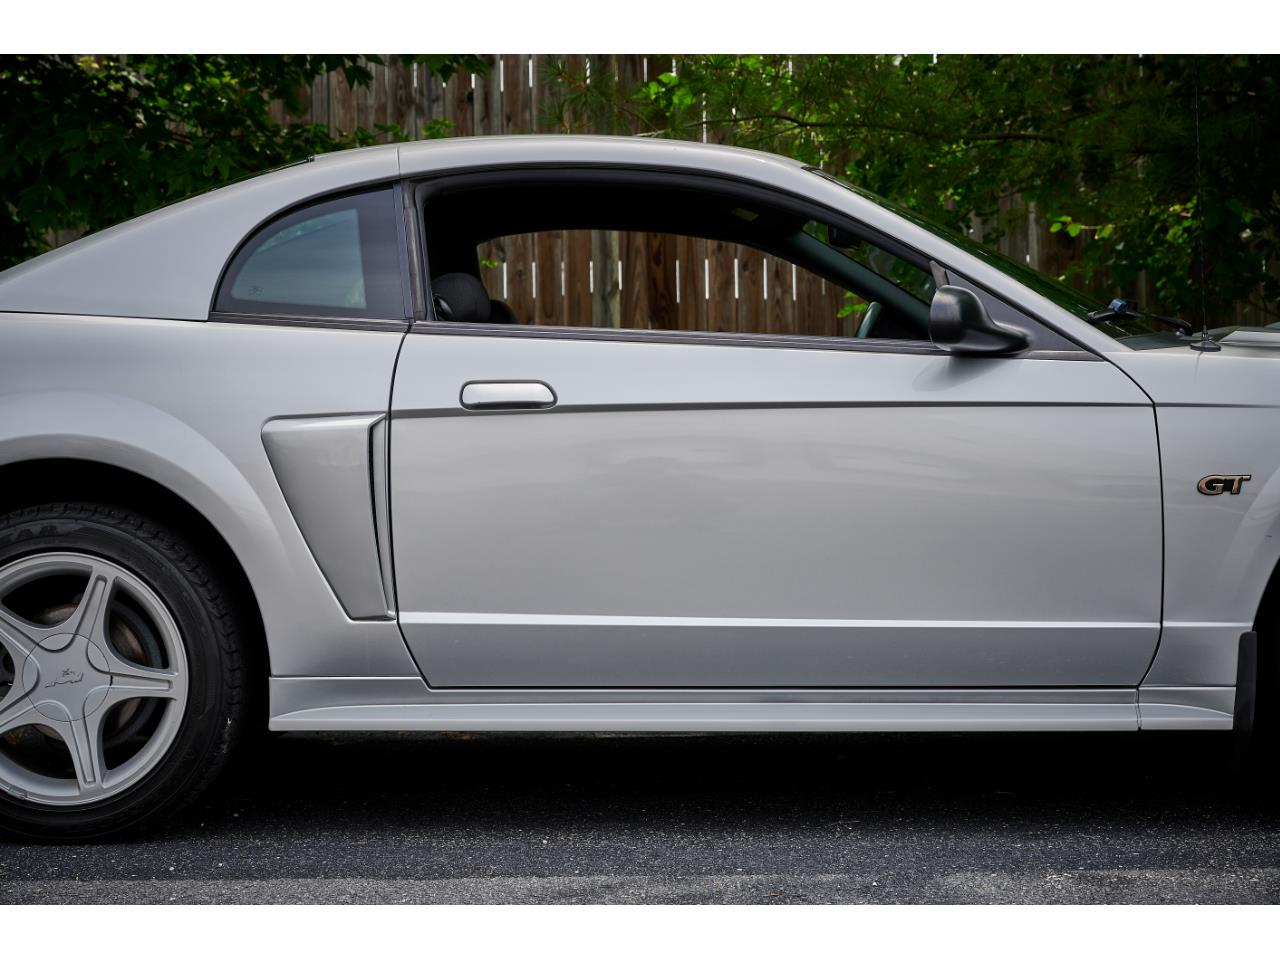 2001 Ford Mustang (CC-1420085) for sale in O'Fallon, Illinois